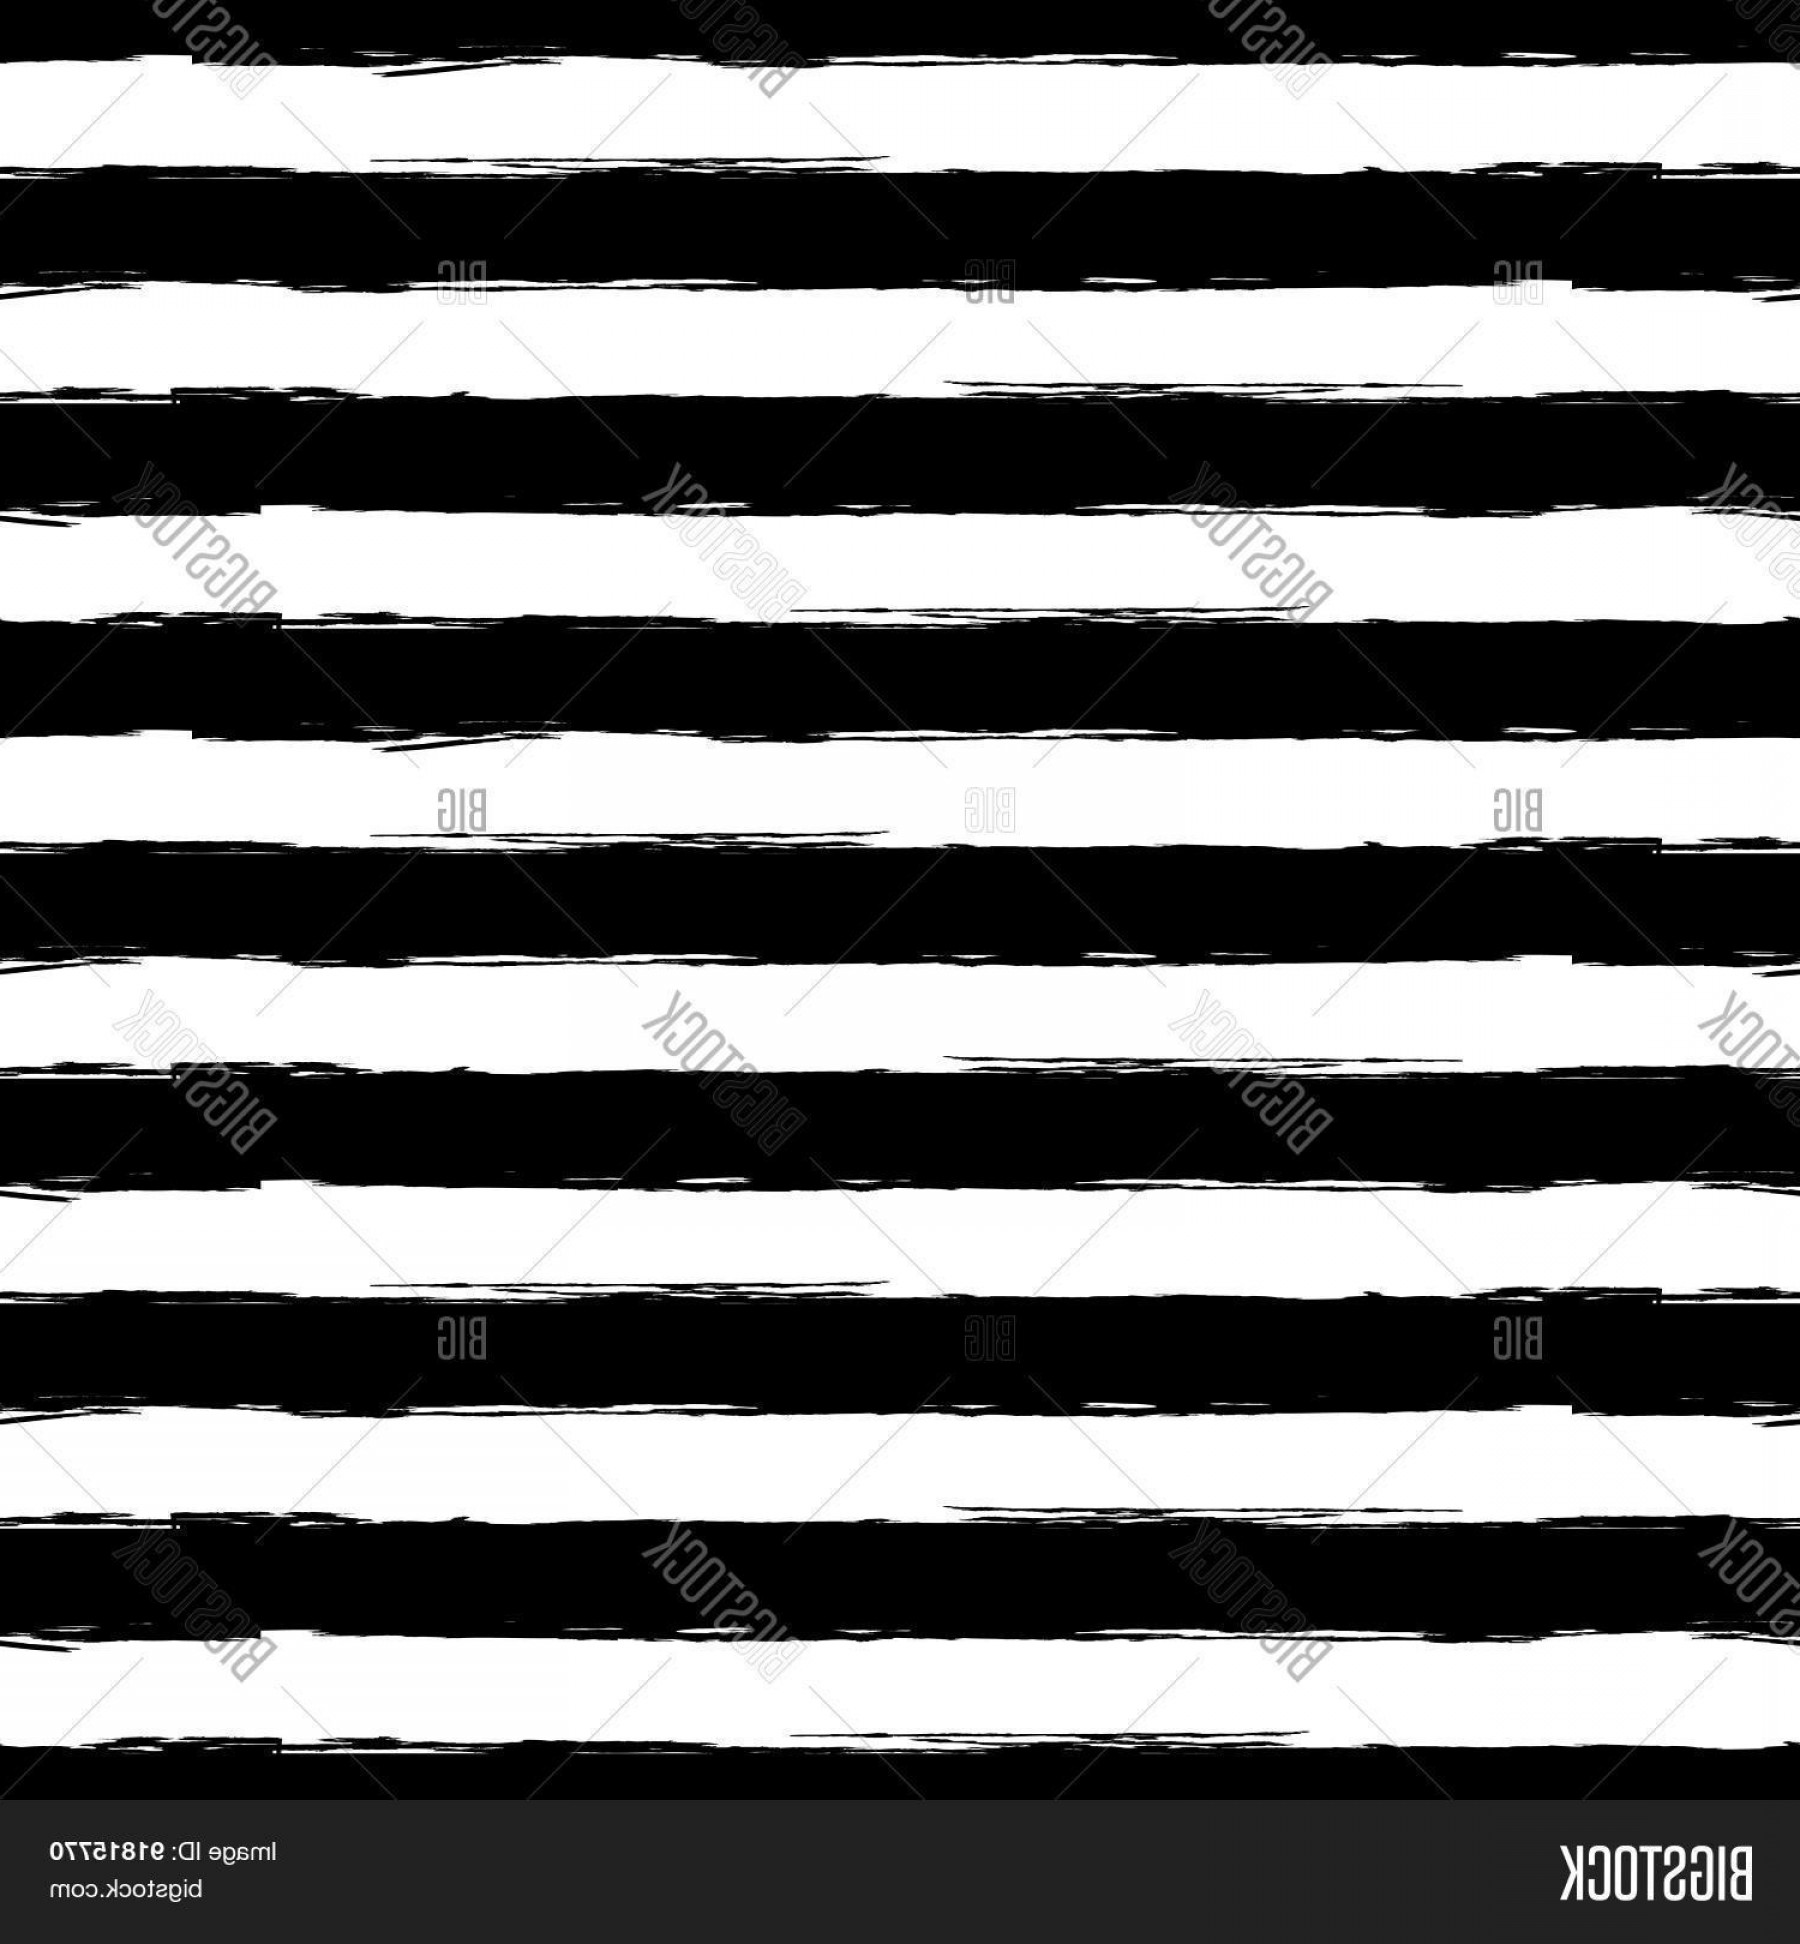 Grunge Stripes Vector: Stock Vector Vector Watercolor Stripe Grunge Seamless Pattern Abstract Black And White Brush Strokes Background